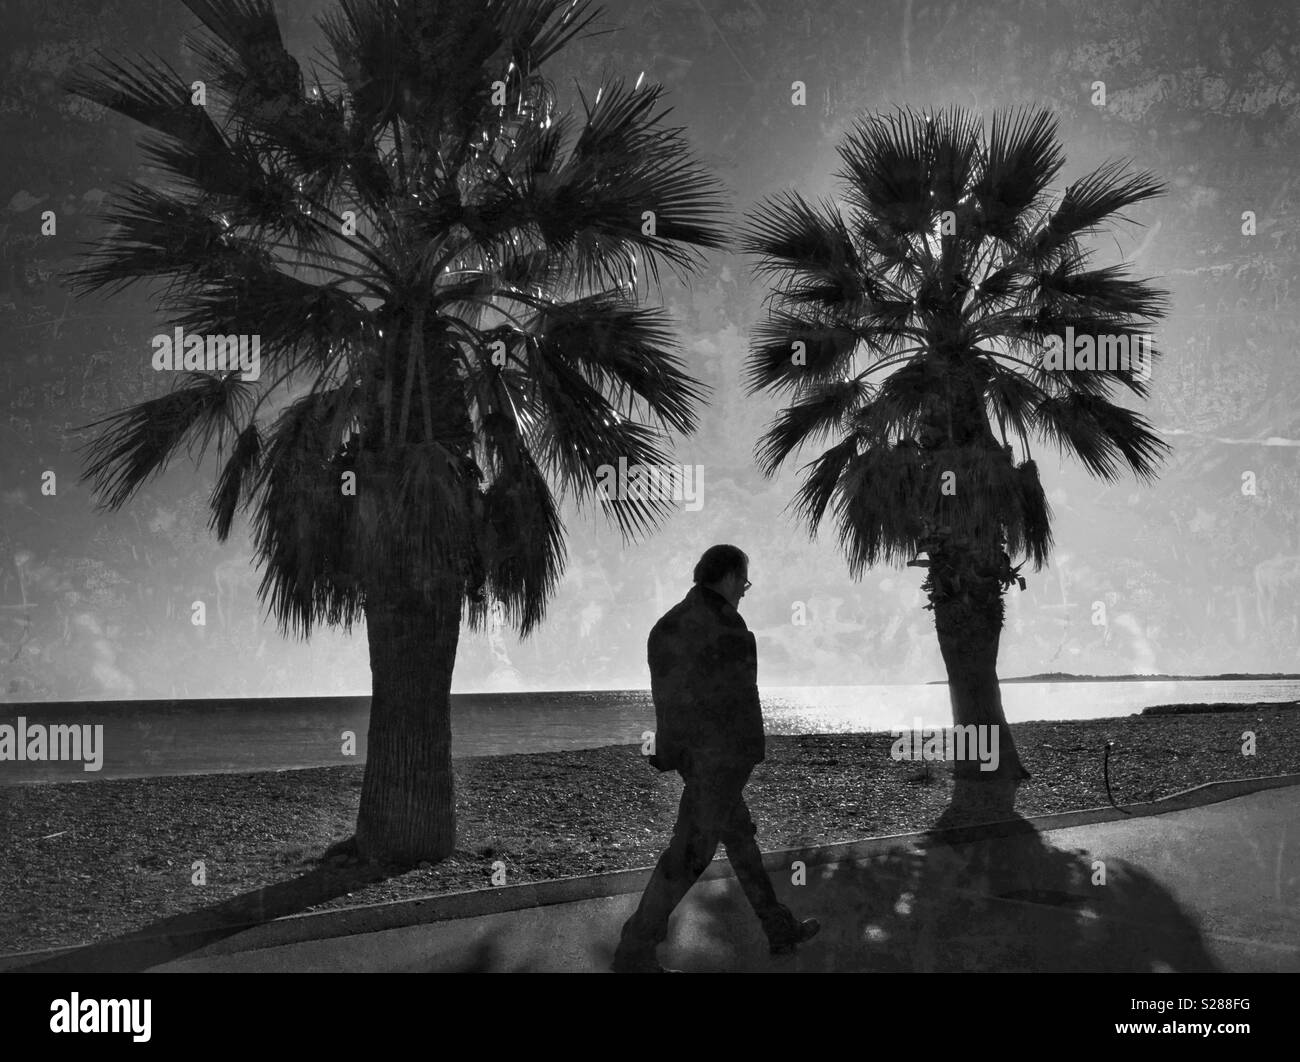 A lone man walks along a path next to two palm trees. An image that evokes feelings of loneliness and vulnerability. Photo Credit - © COLIN HOSKINS. - Stock Image